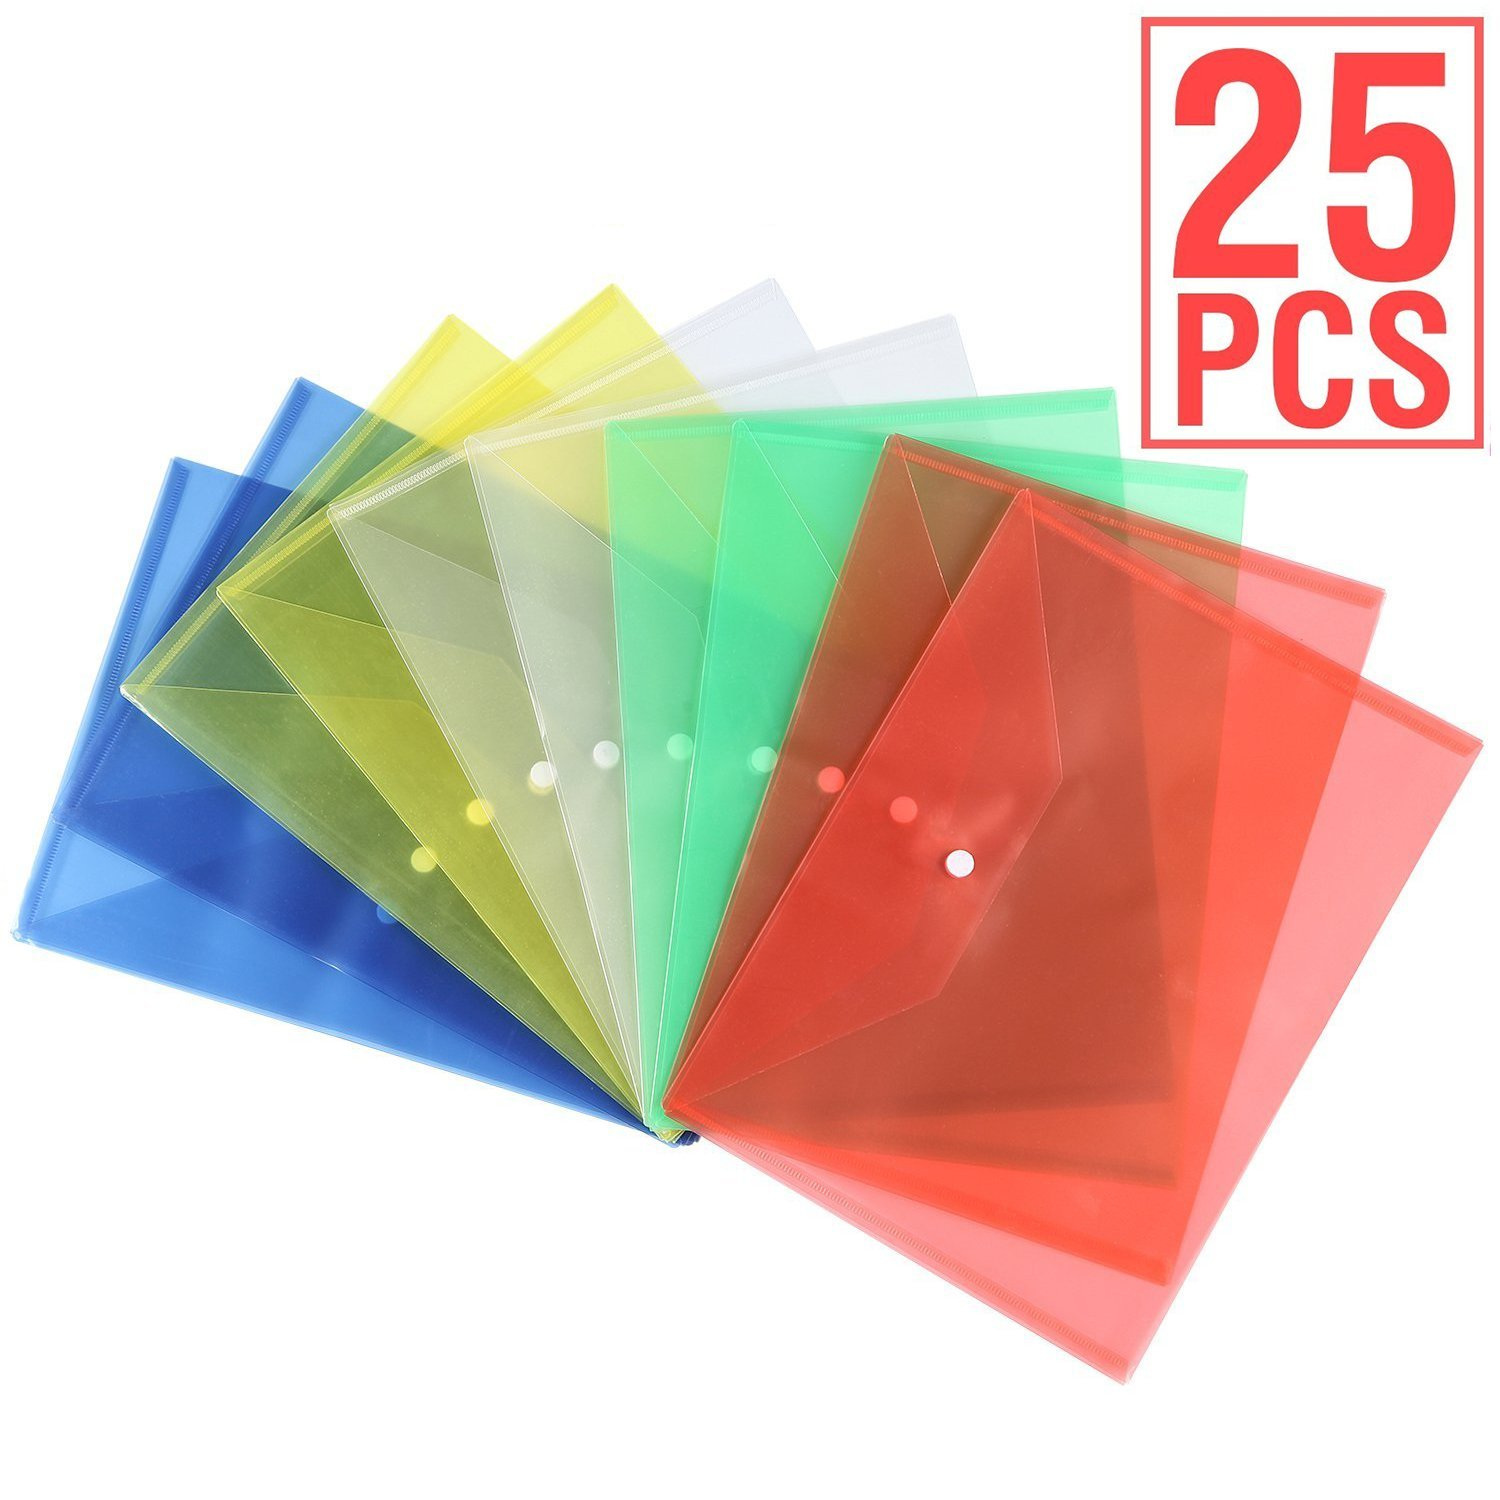 Clear Document Folder with Snap Button, Closure Plastic Folders, Multicolor Poly Envelope, US LETTER/A4 Size, Transparent Envelopes Designed for School, Home, Work and Office Organization (25 PACK)